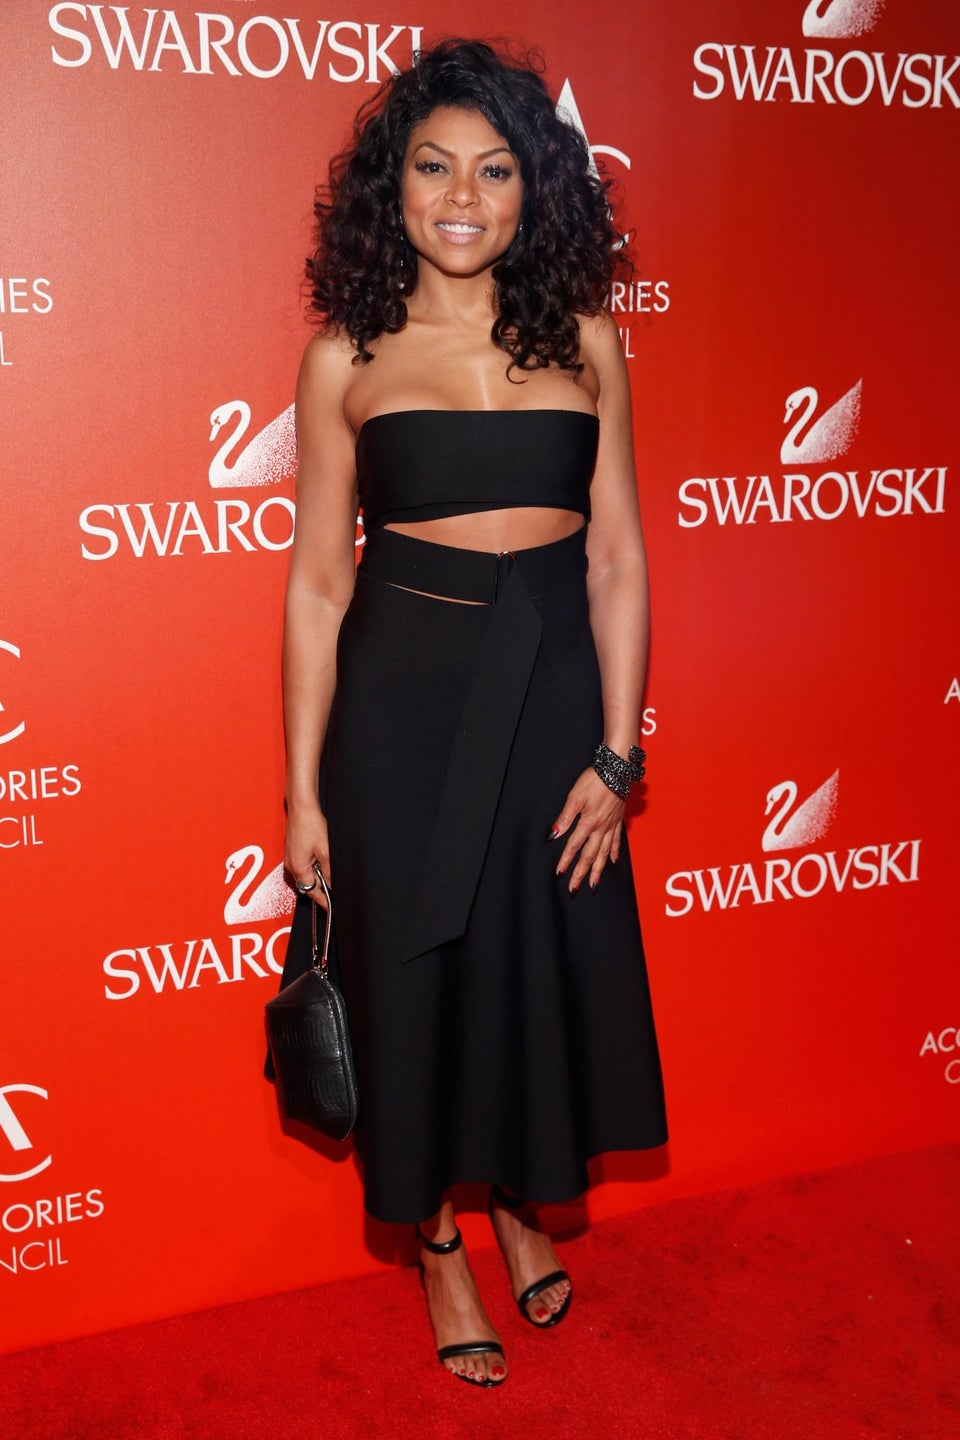 Taraji P. Henson Honored at 19th Annual Accessories Council ACE Awards